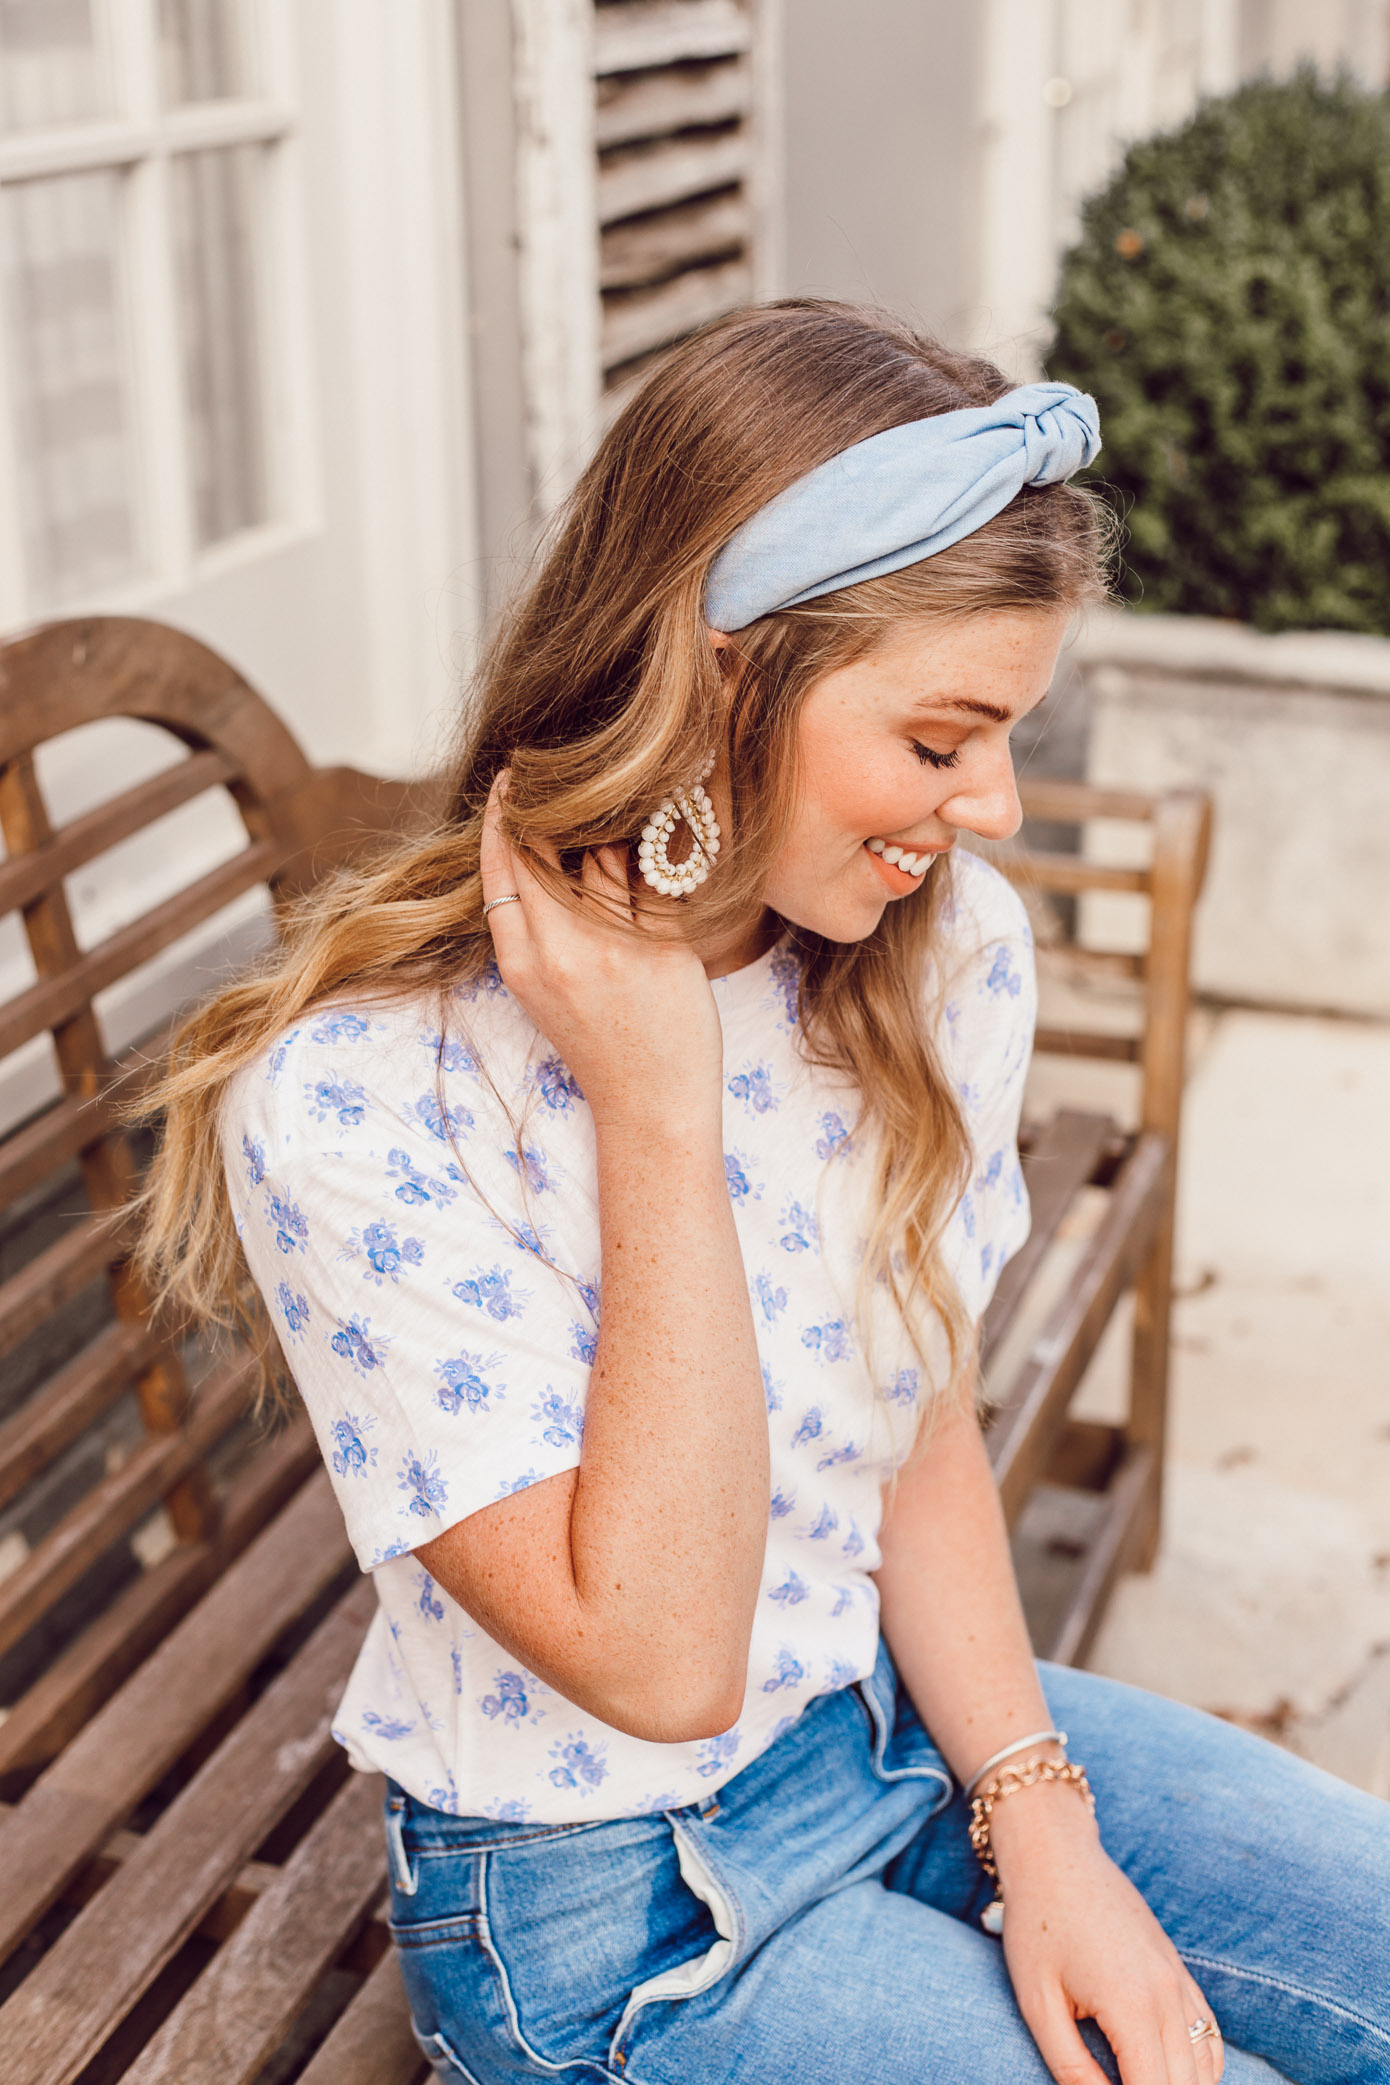 Chambray Headband, J.Crew Floral Tee Shirt for Fall | Fashion Faux Pas or Time Tested Trend featured on Louella Reese Life & Style Blog